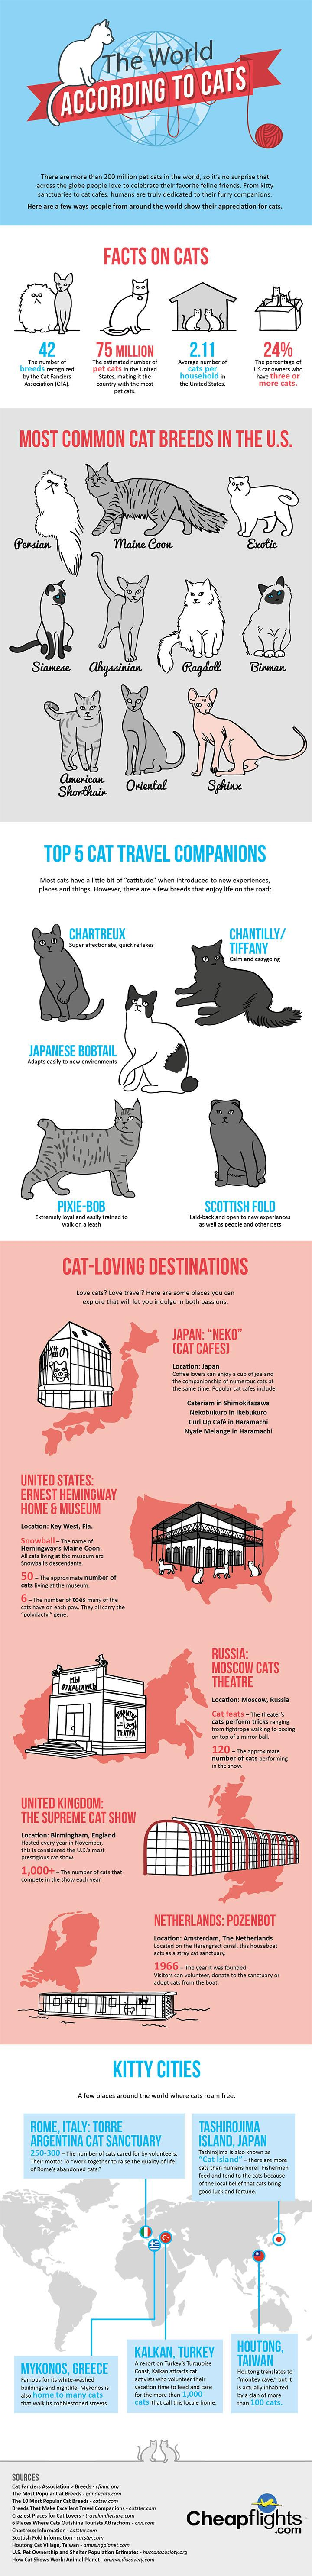 the-world-according-to-cats